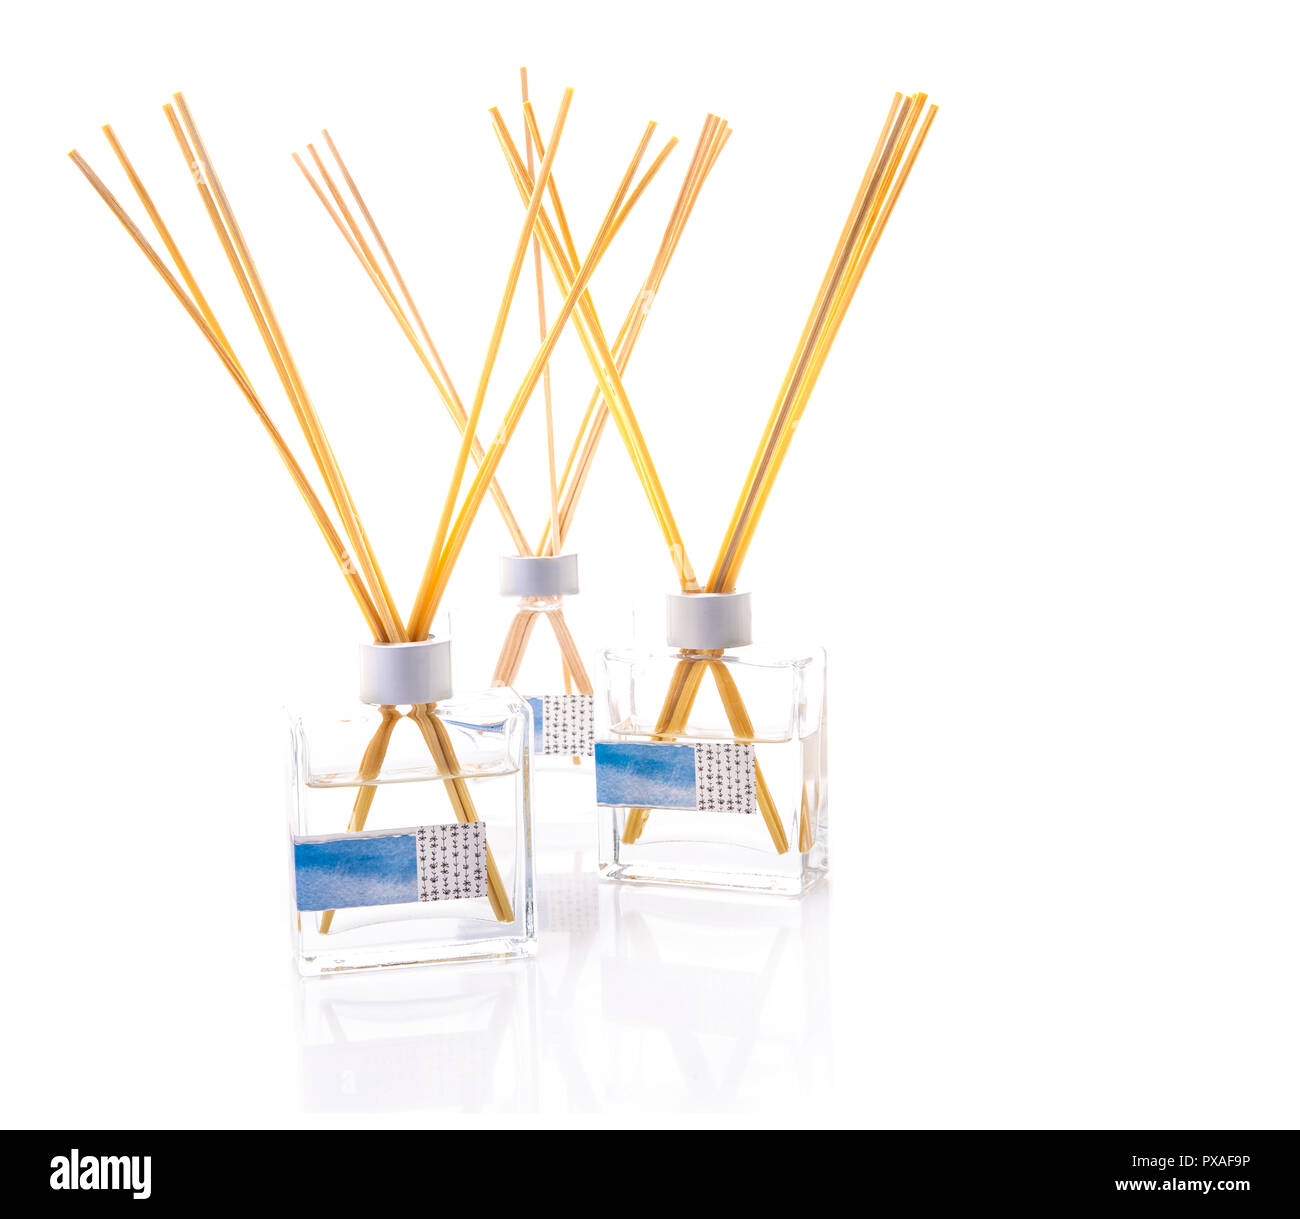 Three Reed Defusers on a white background - Stock Image